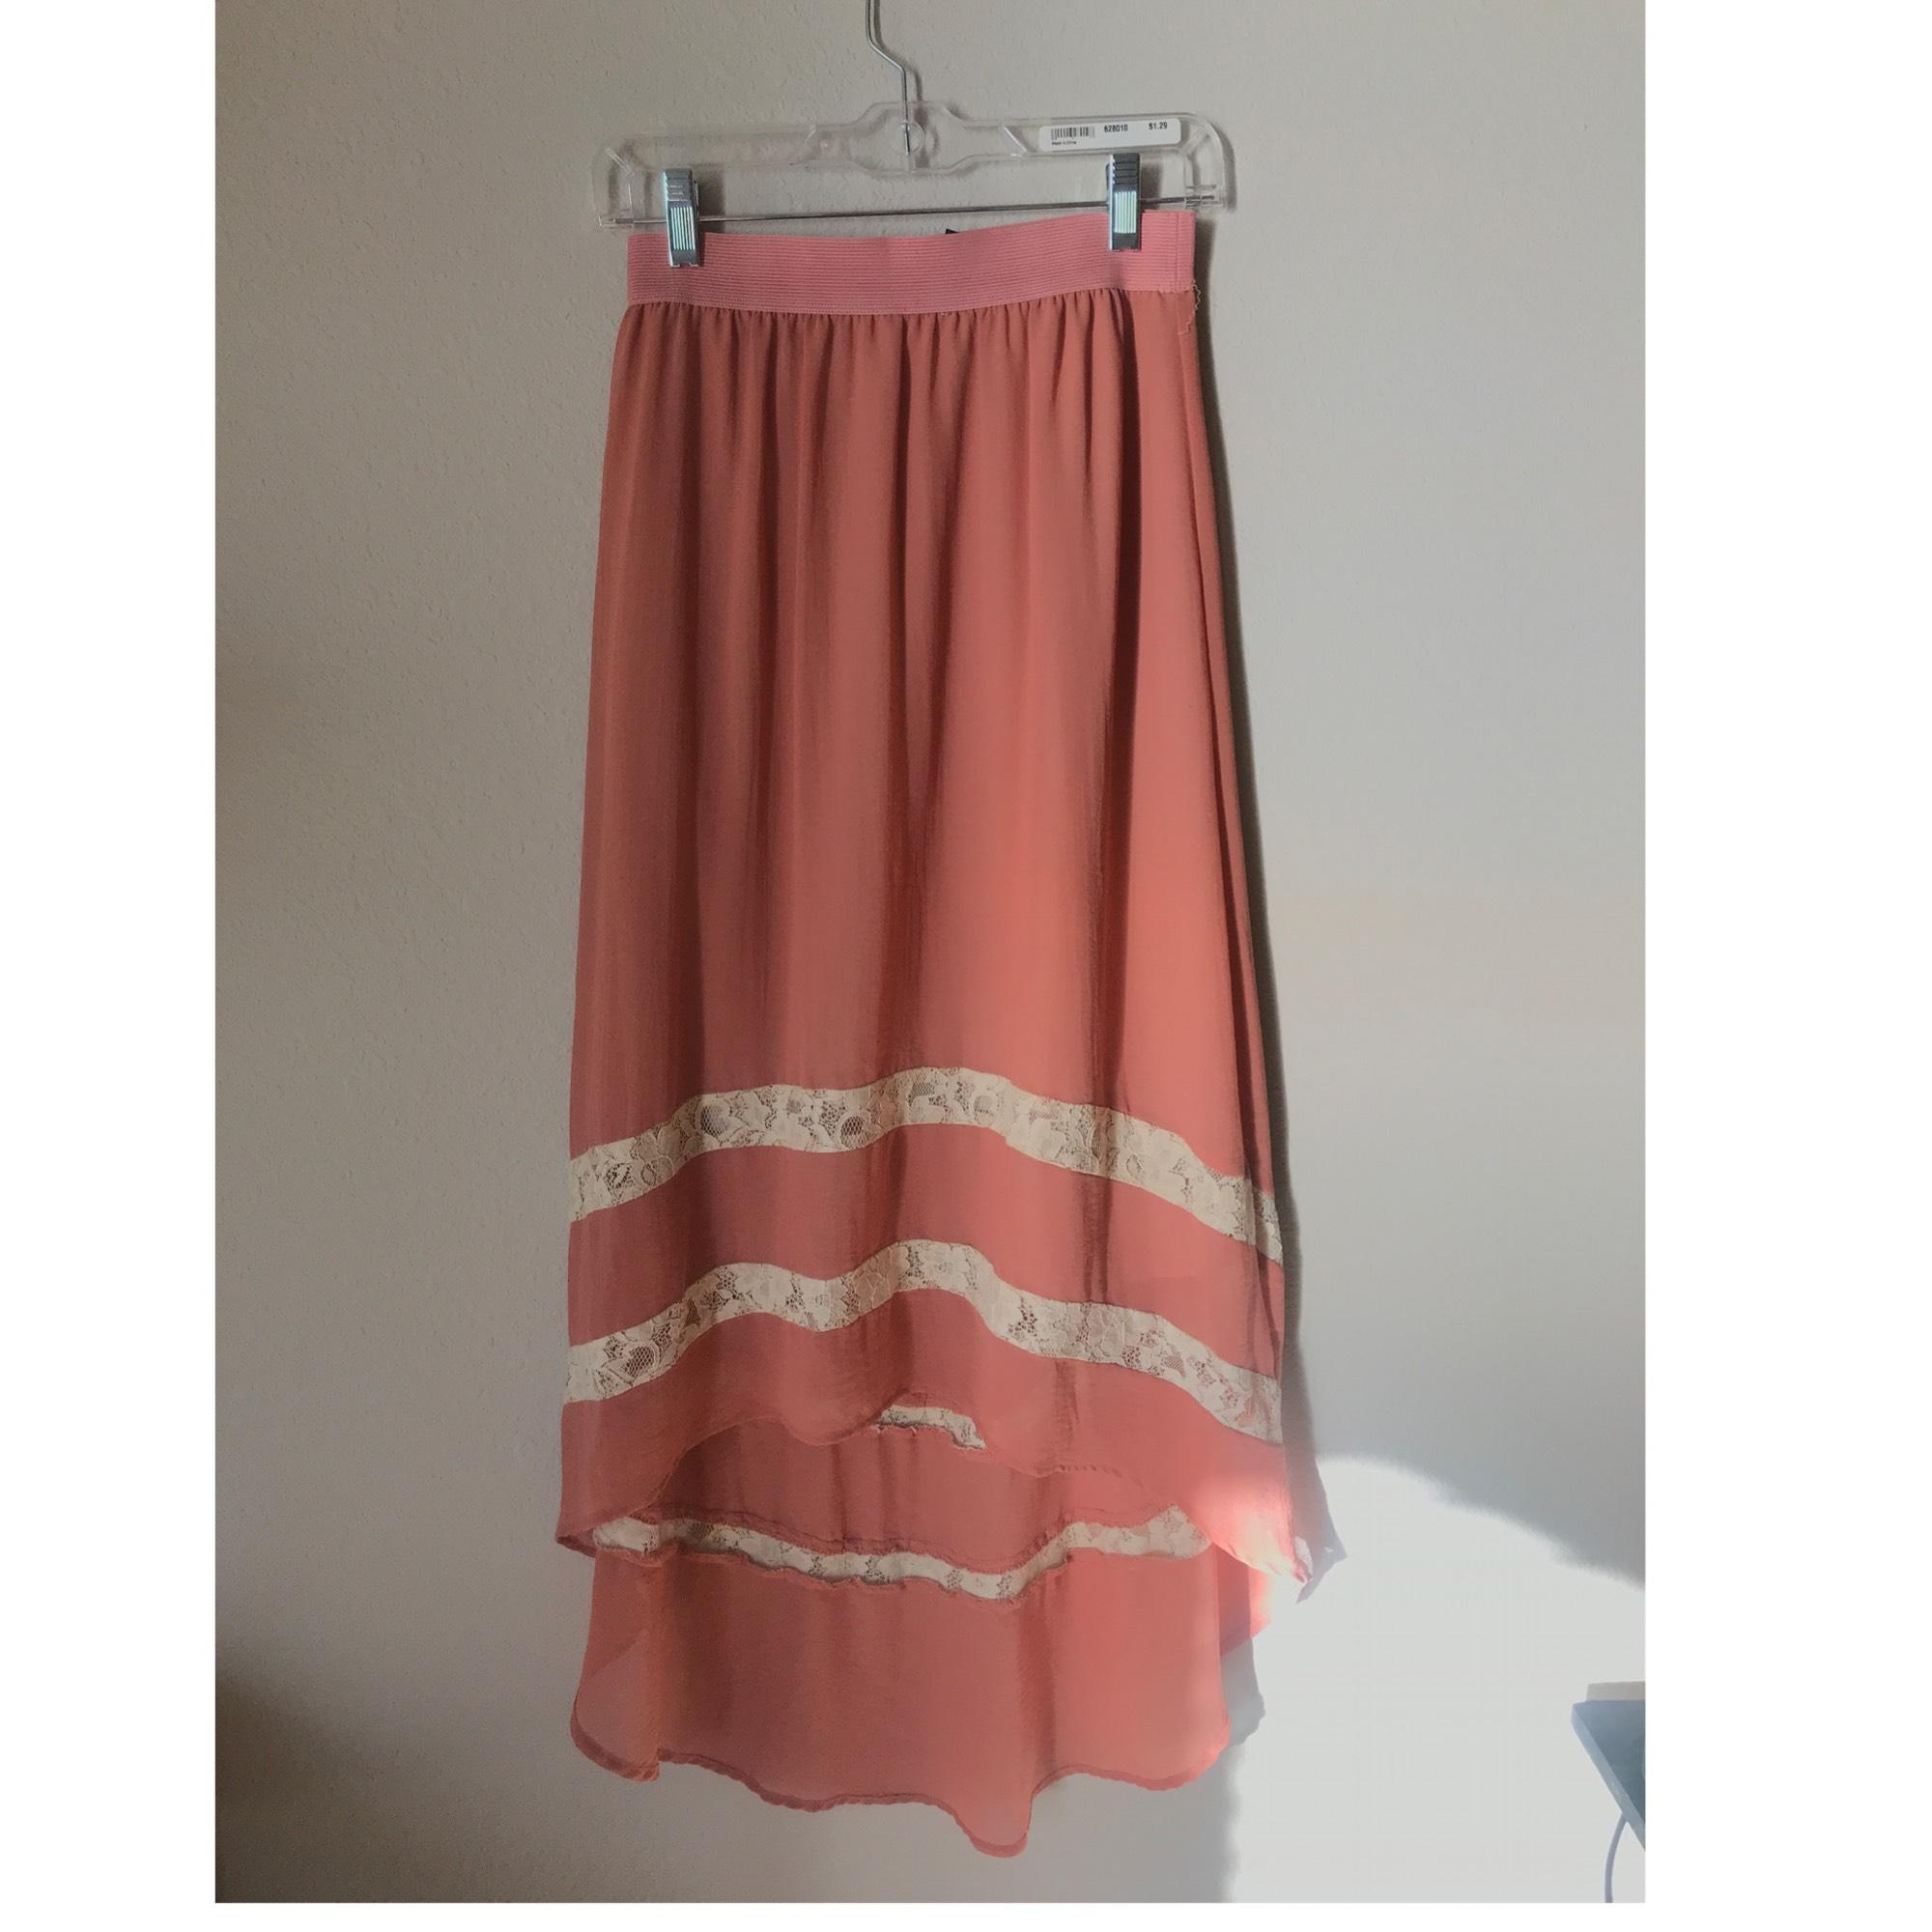 bobeau and white mr2834129r midi skirt size 6 s 28